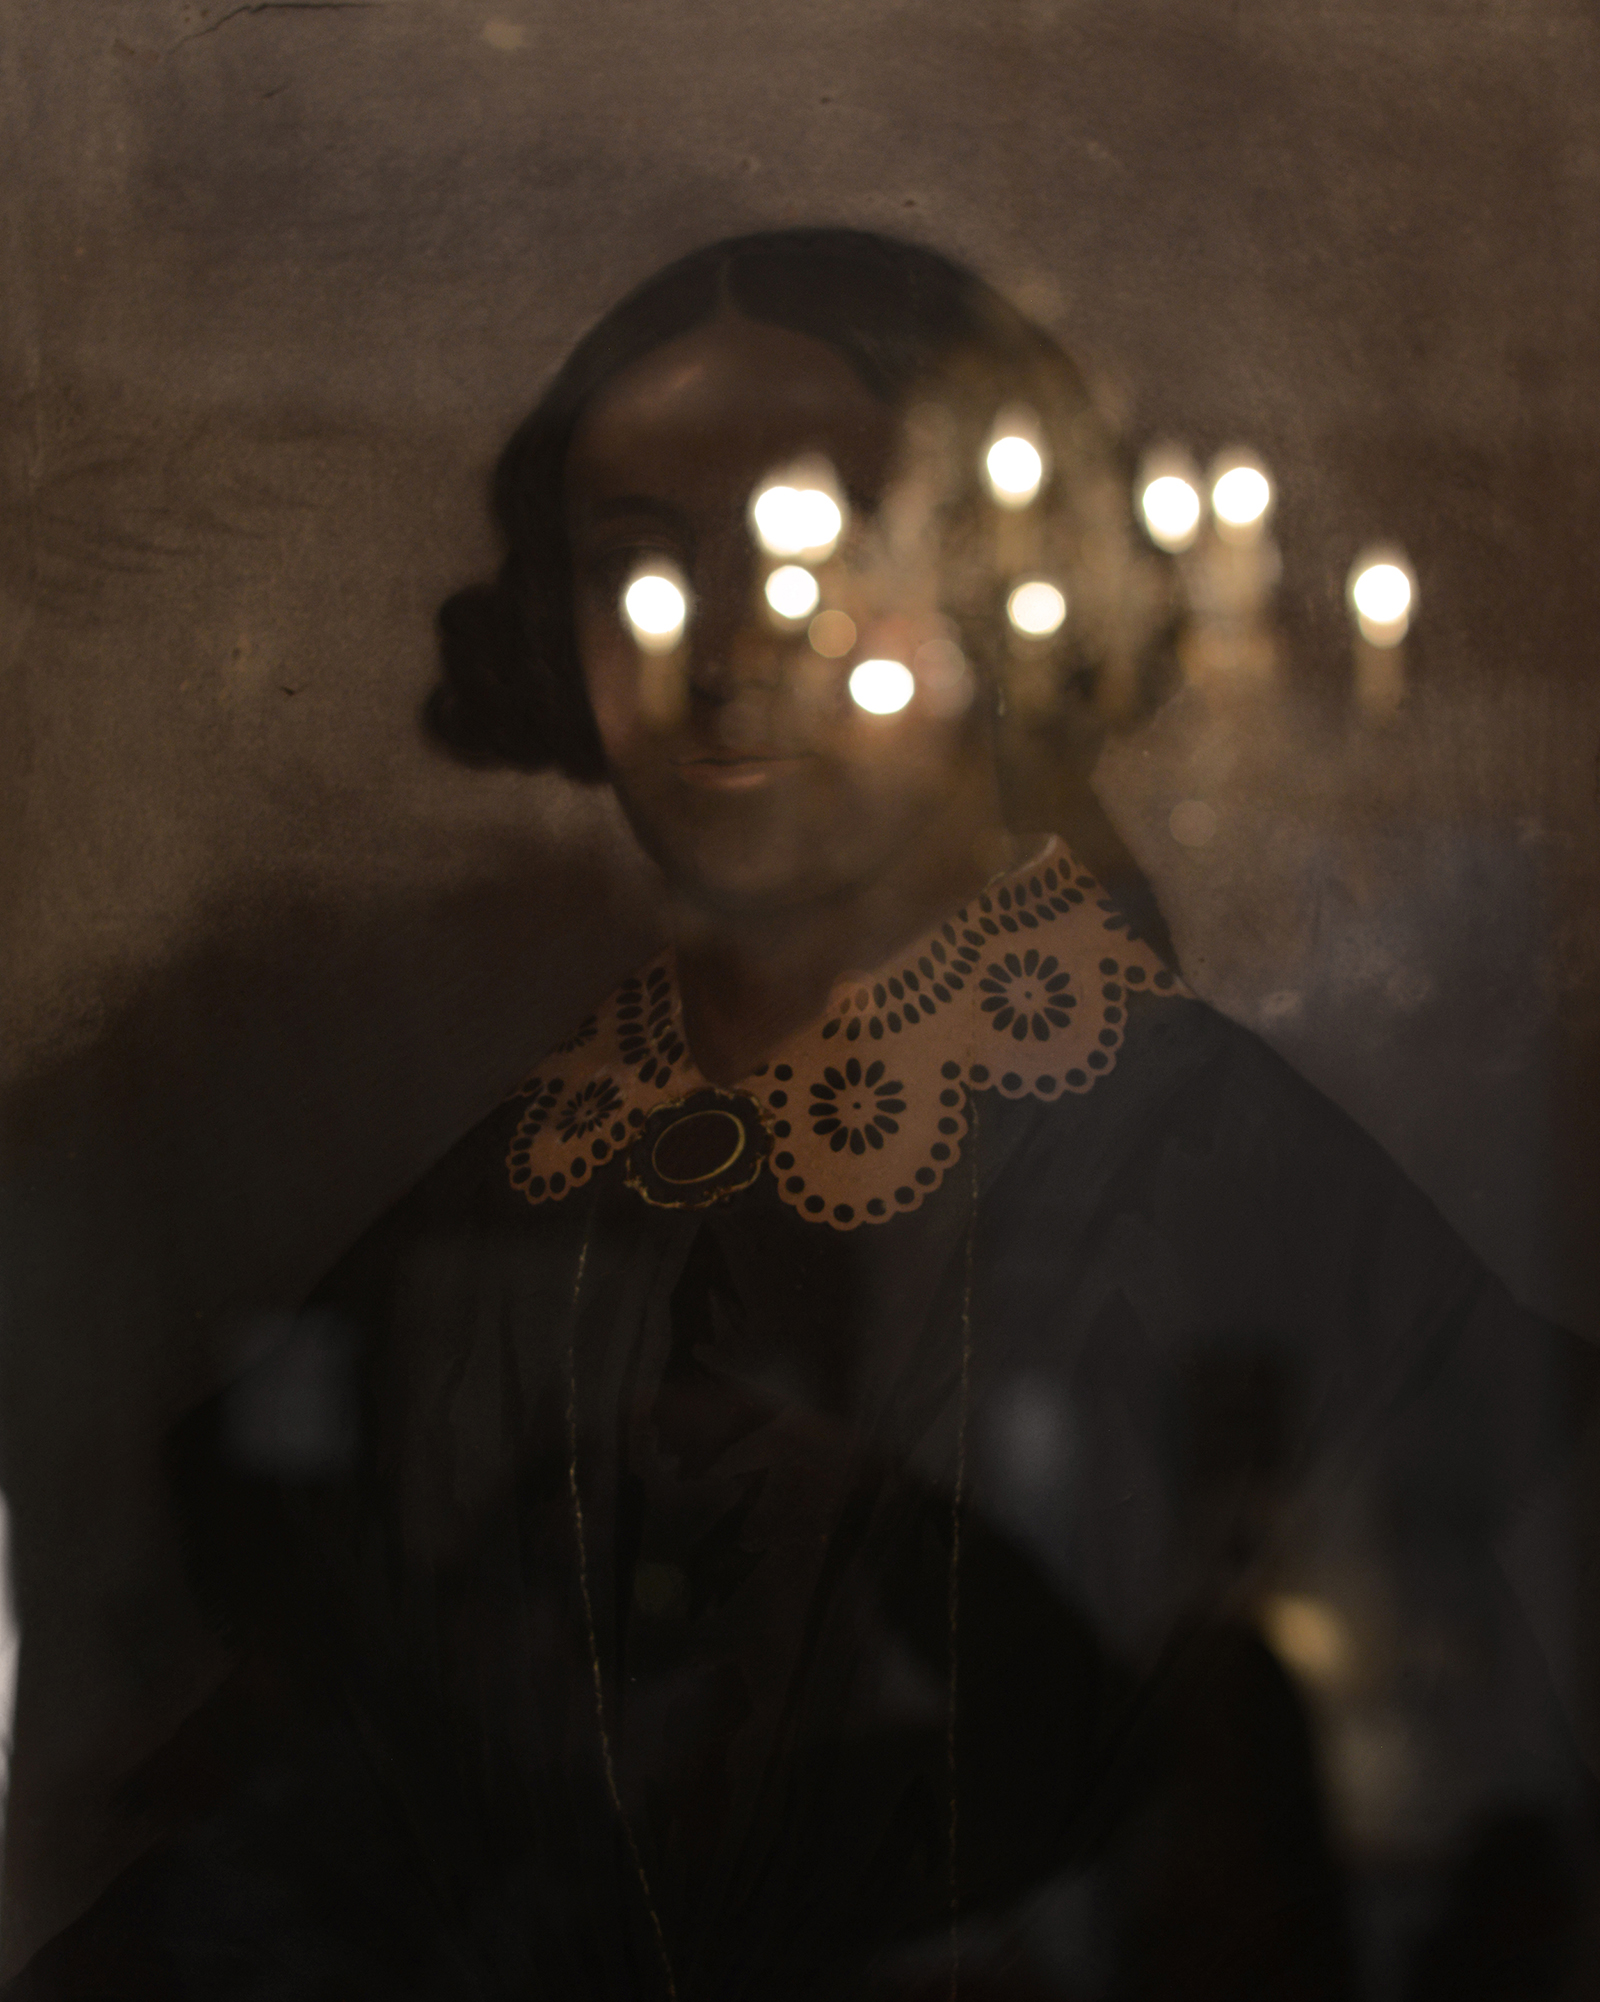 «Portrait of Lady» presumed to be a free woman of color, dated 1857, Le Musée de free people of color, New Orleans.